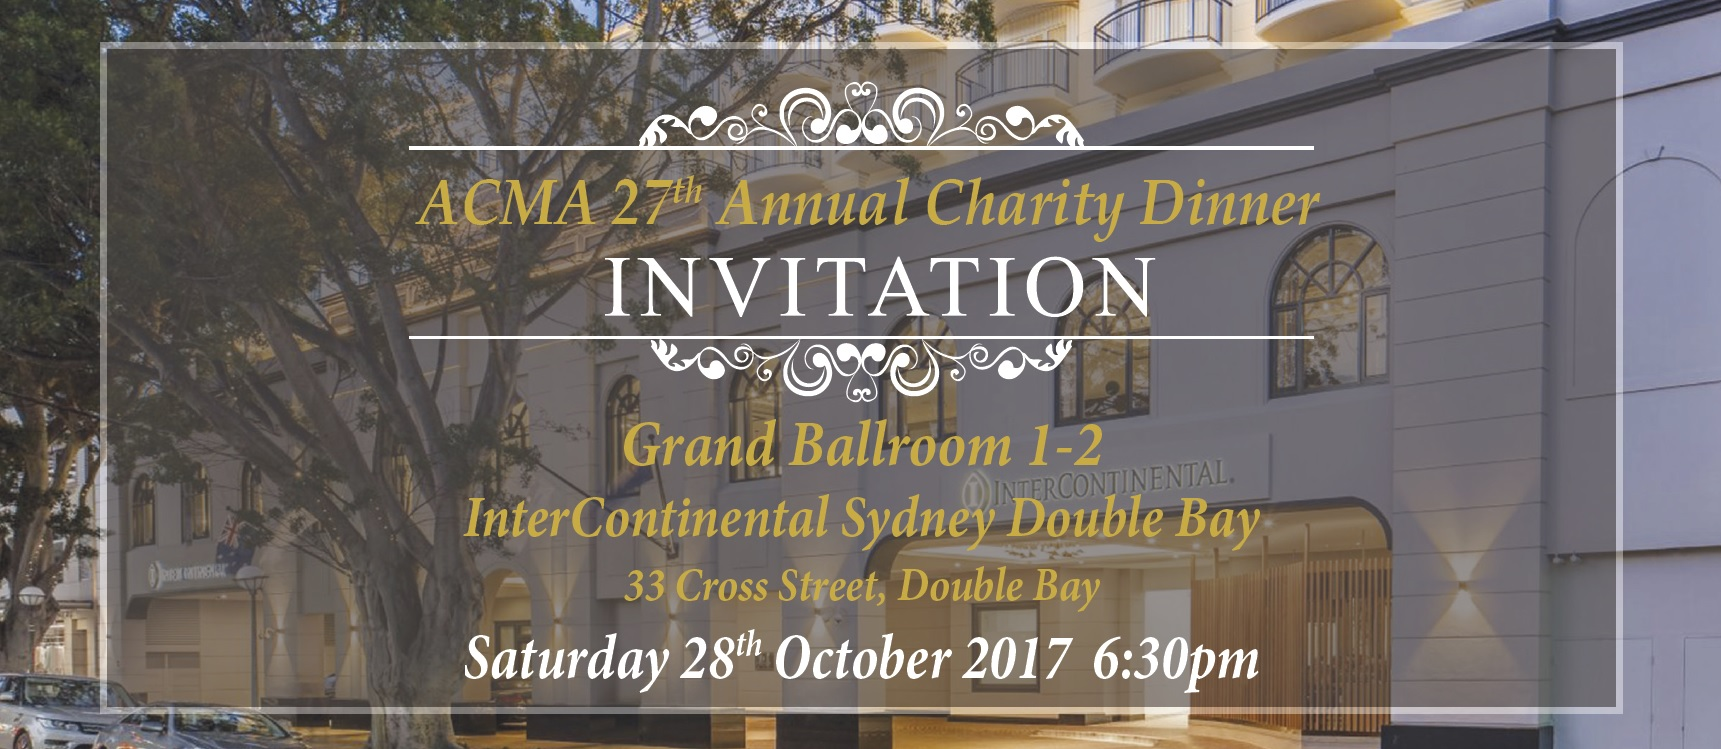 ACMA 27th Annual Charity Dinner